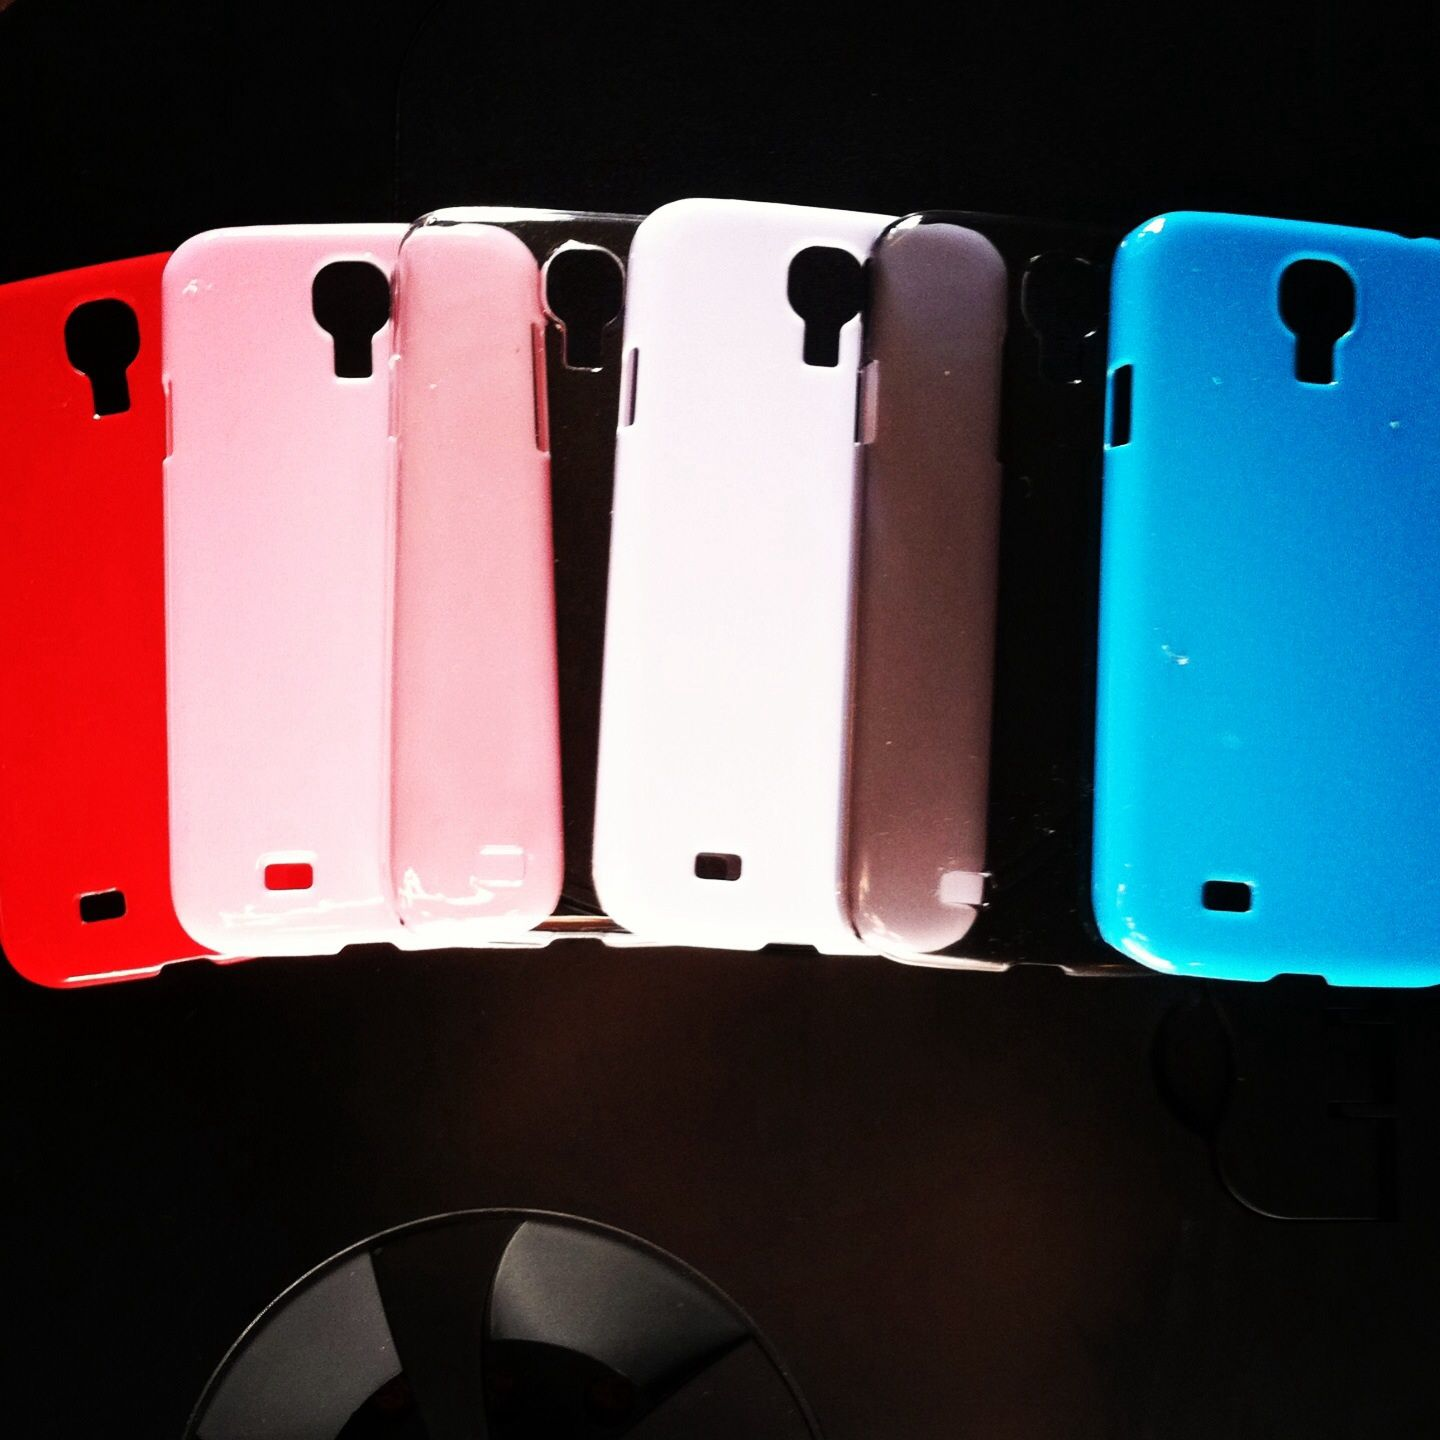 Samsung Galaxy 4s Plain Colorful Cases.